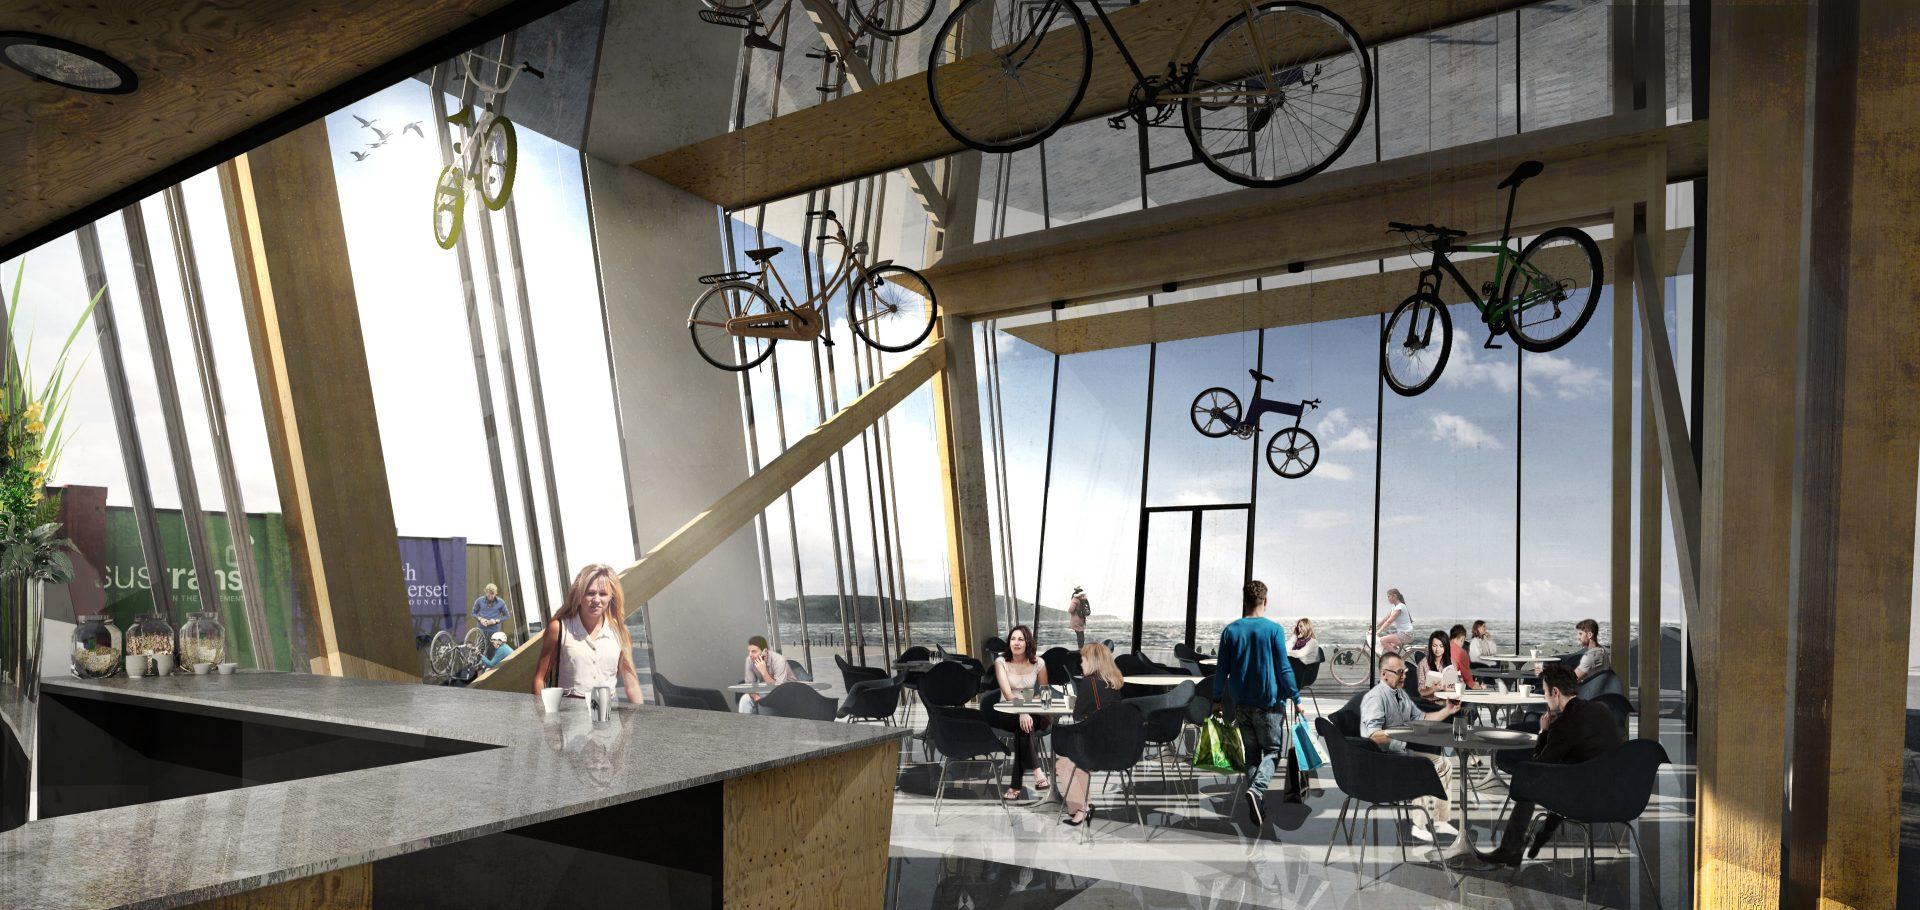 Weston-super-Mare Cycle Activities Centre Bar Cafe Cladding Laminated Timber Frame